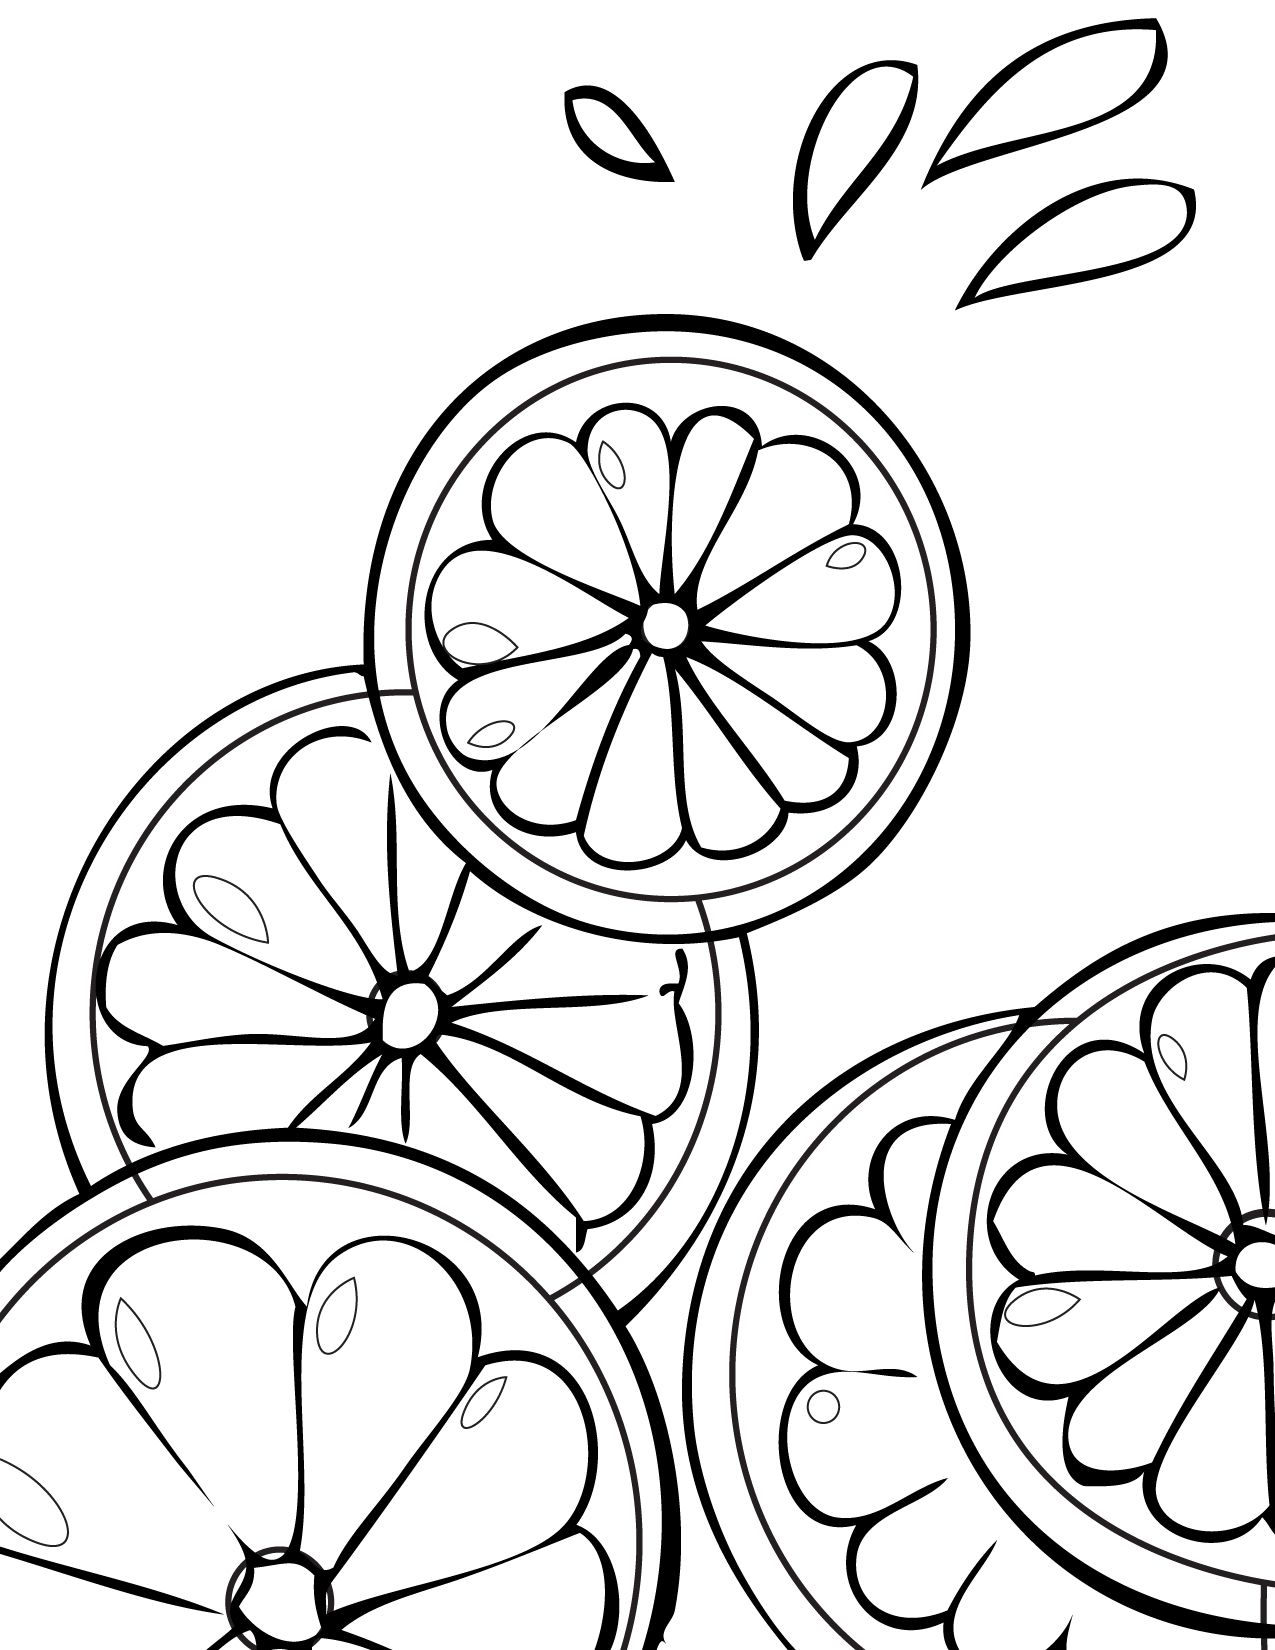 Free Printable Fruit Coloring Pages For Kids | Draw | Fruit